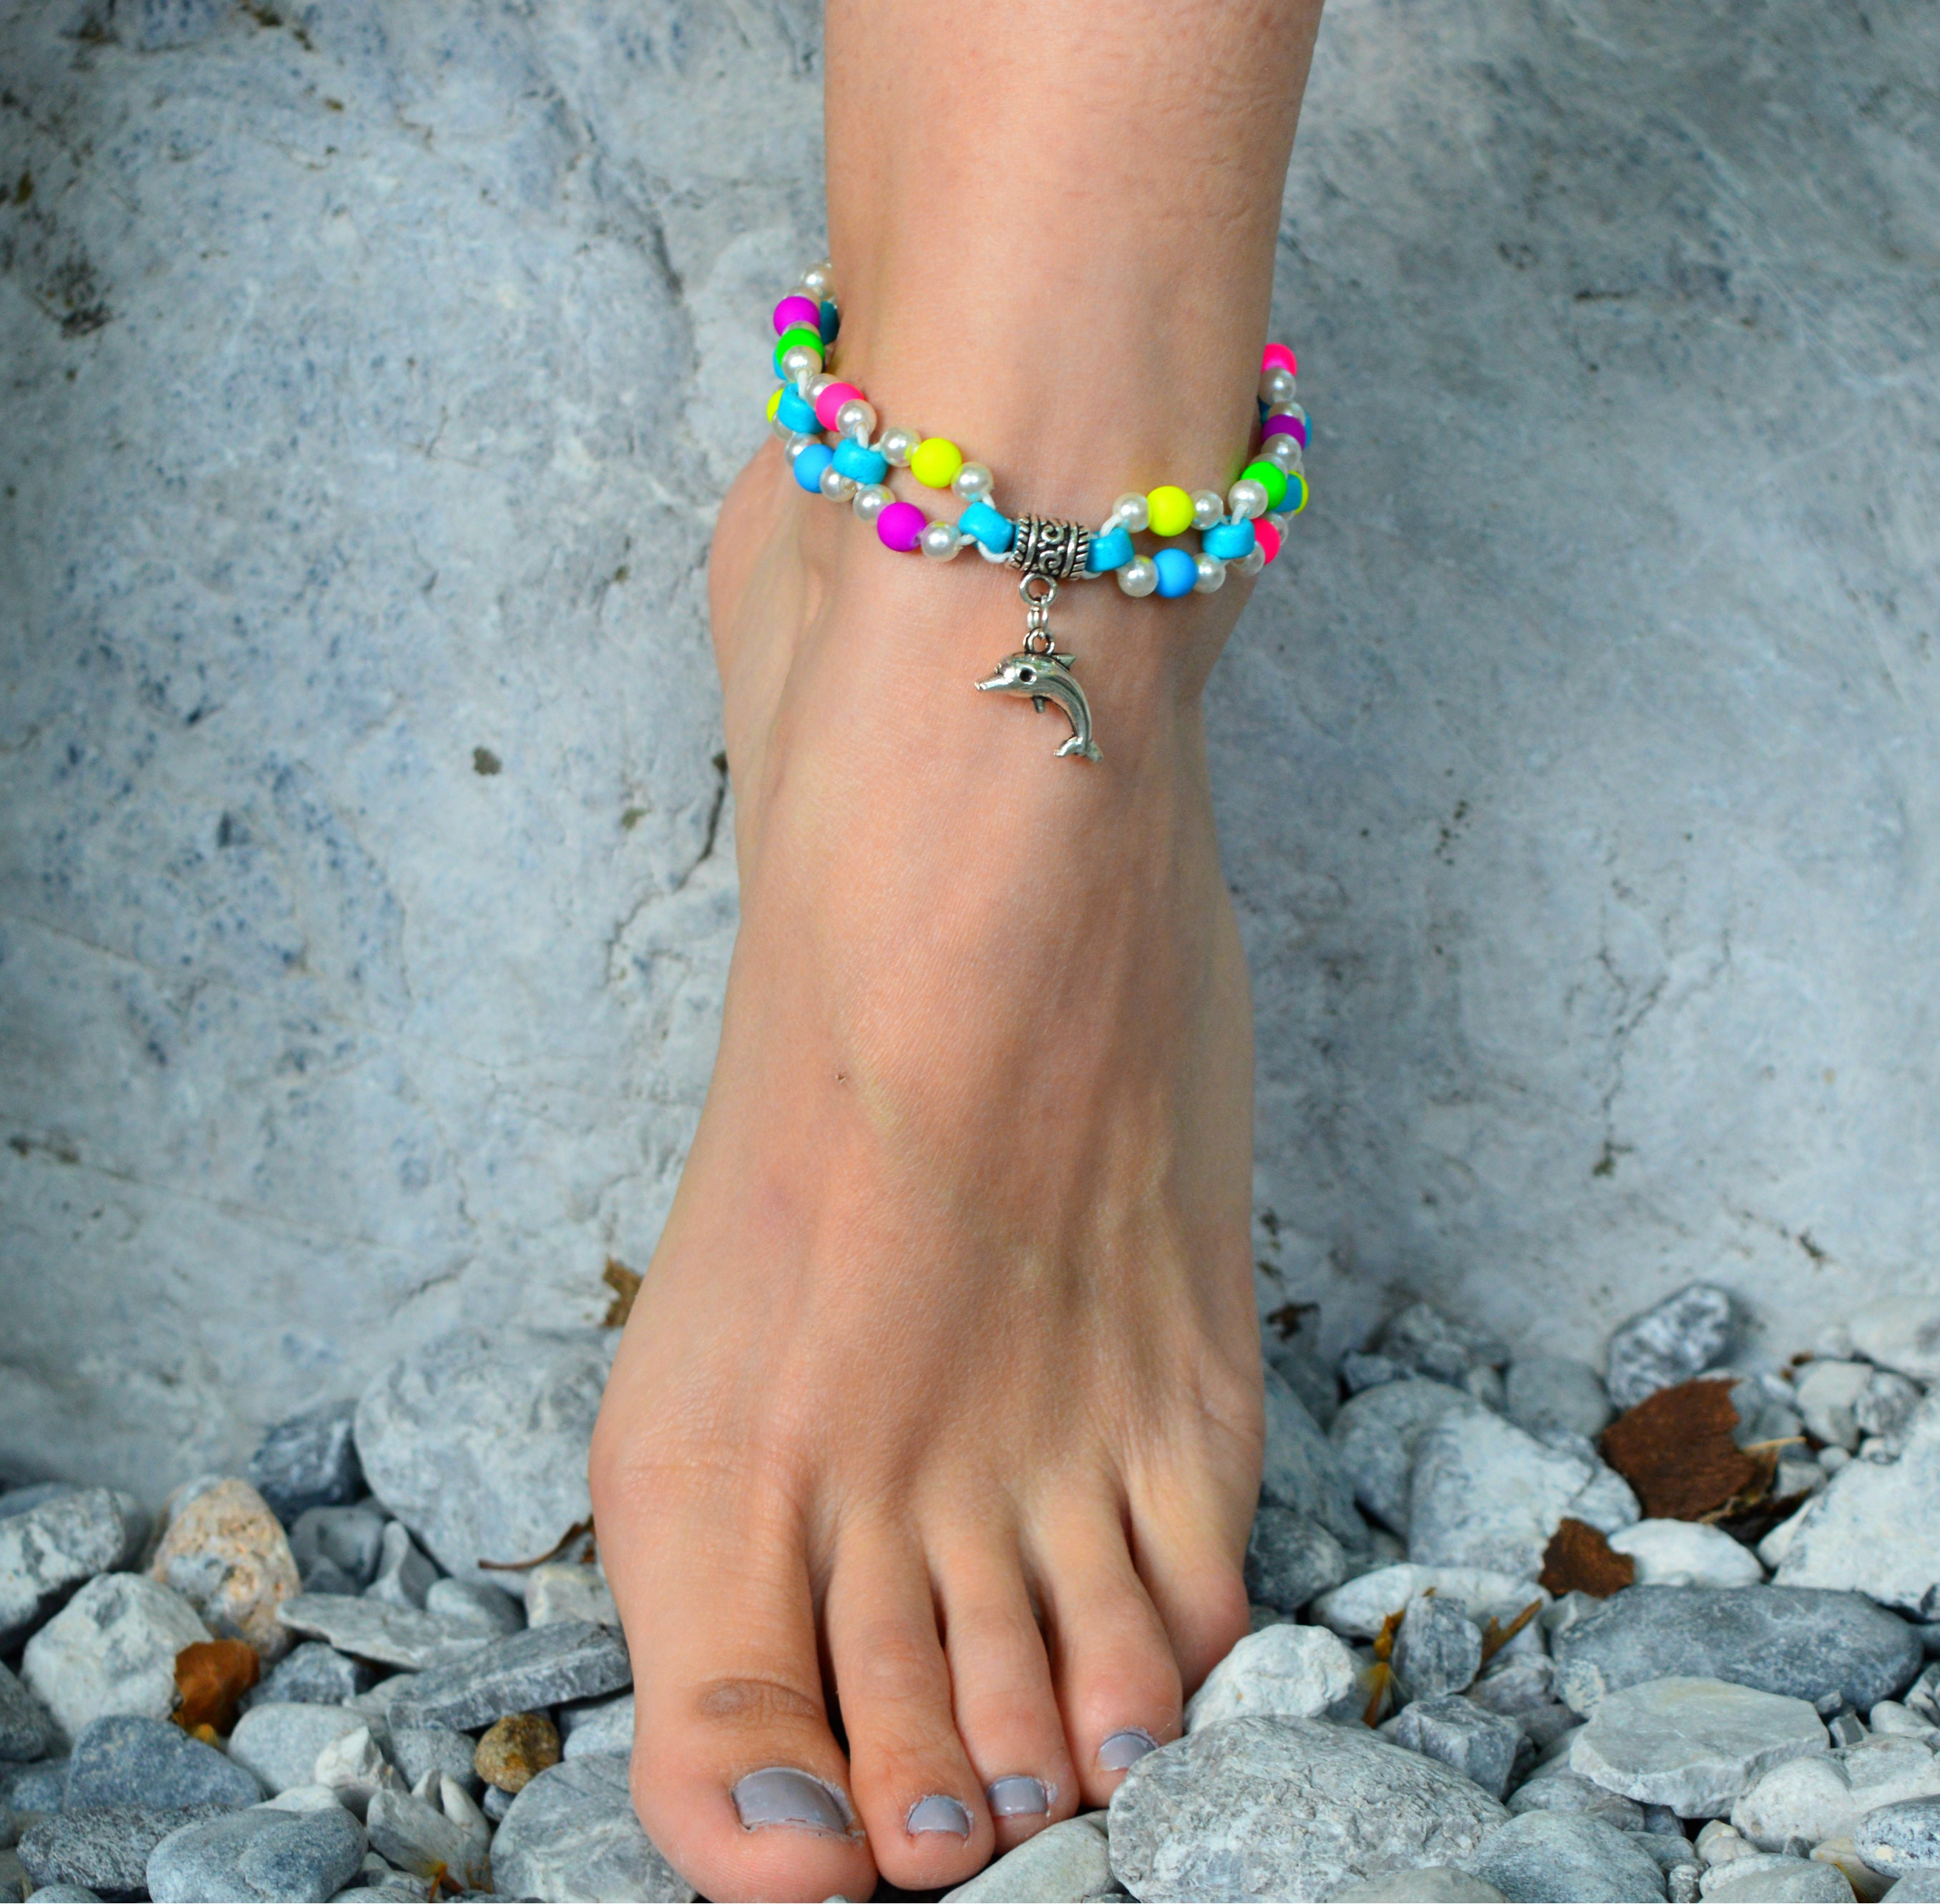 bracelet tattoos star small design bracelets anklet images beach tattoo ankle